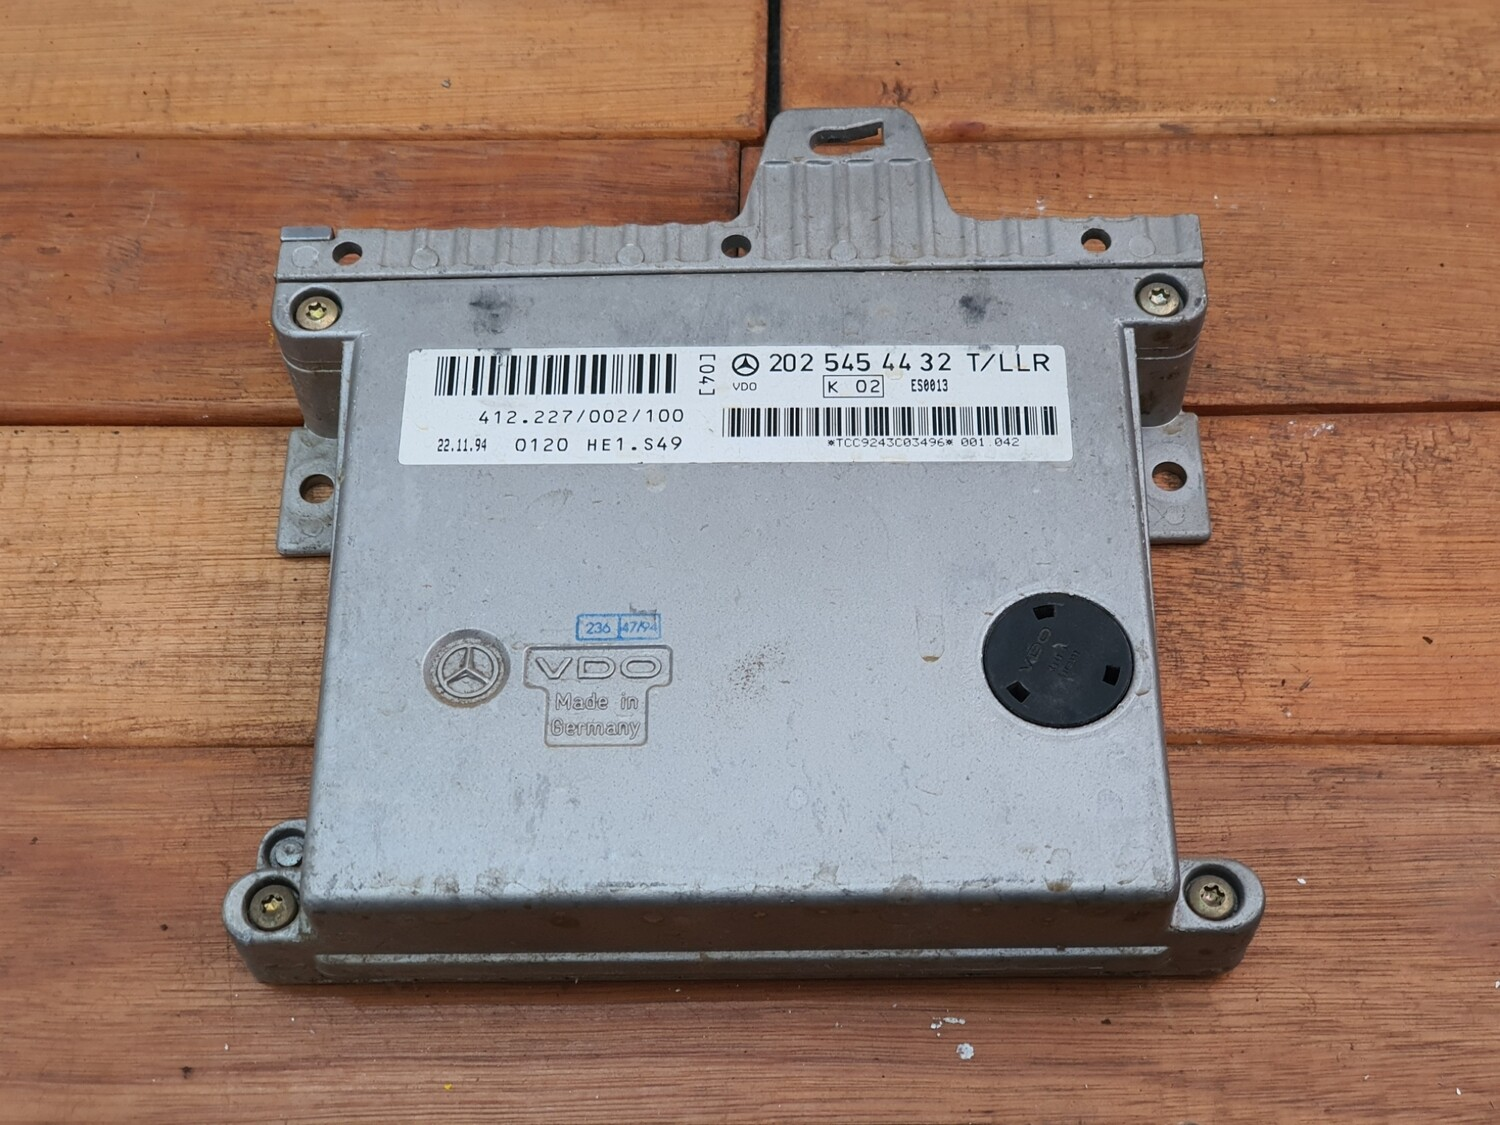 Mercedes-Benz idle speed and cruise control module